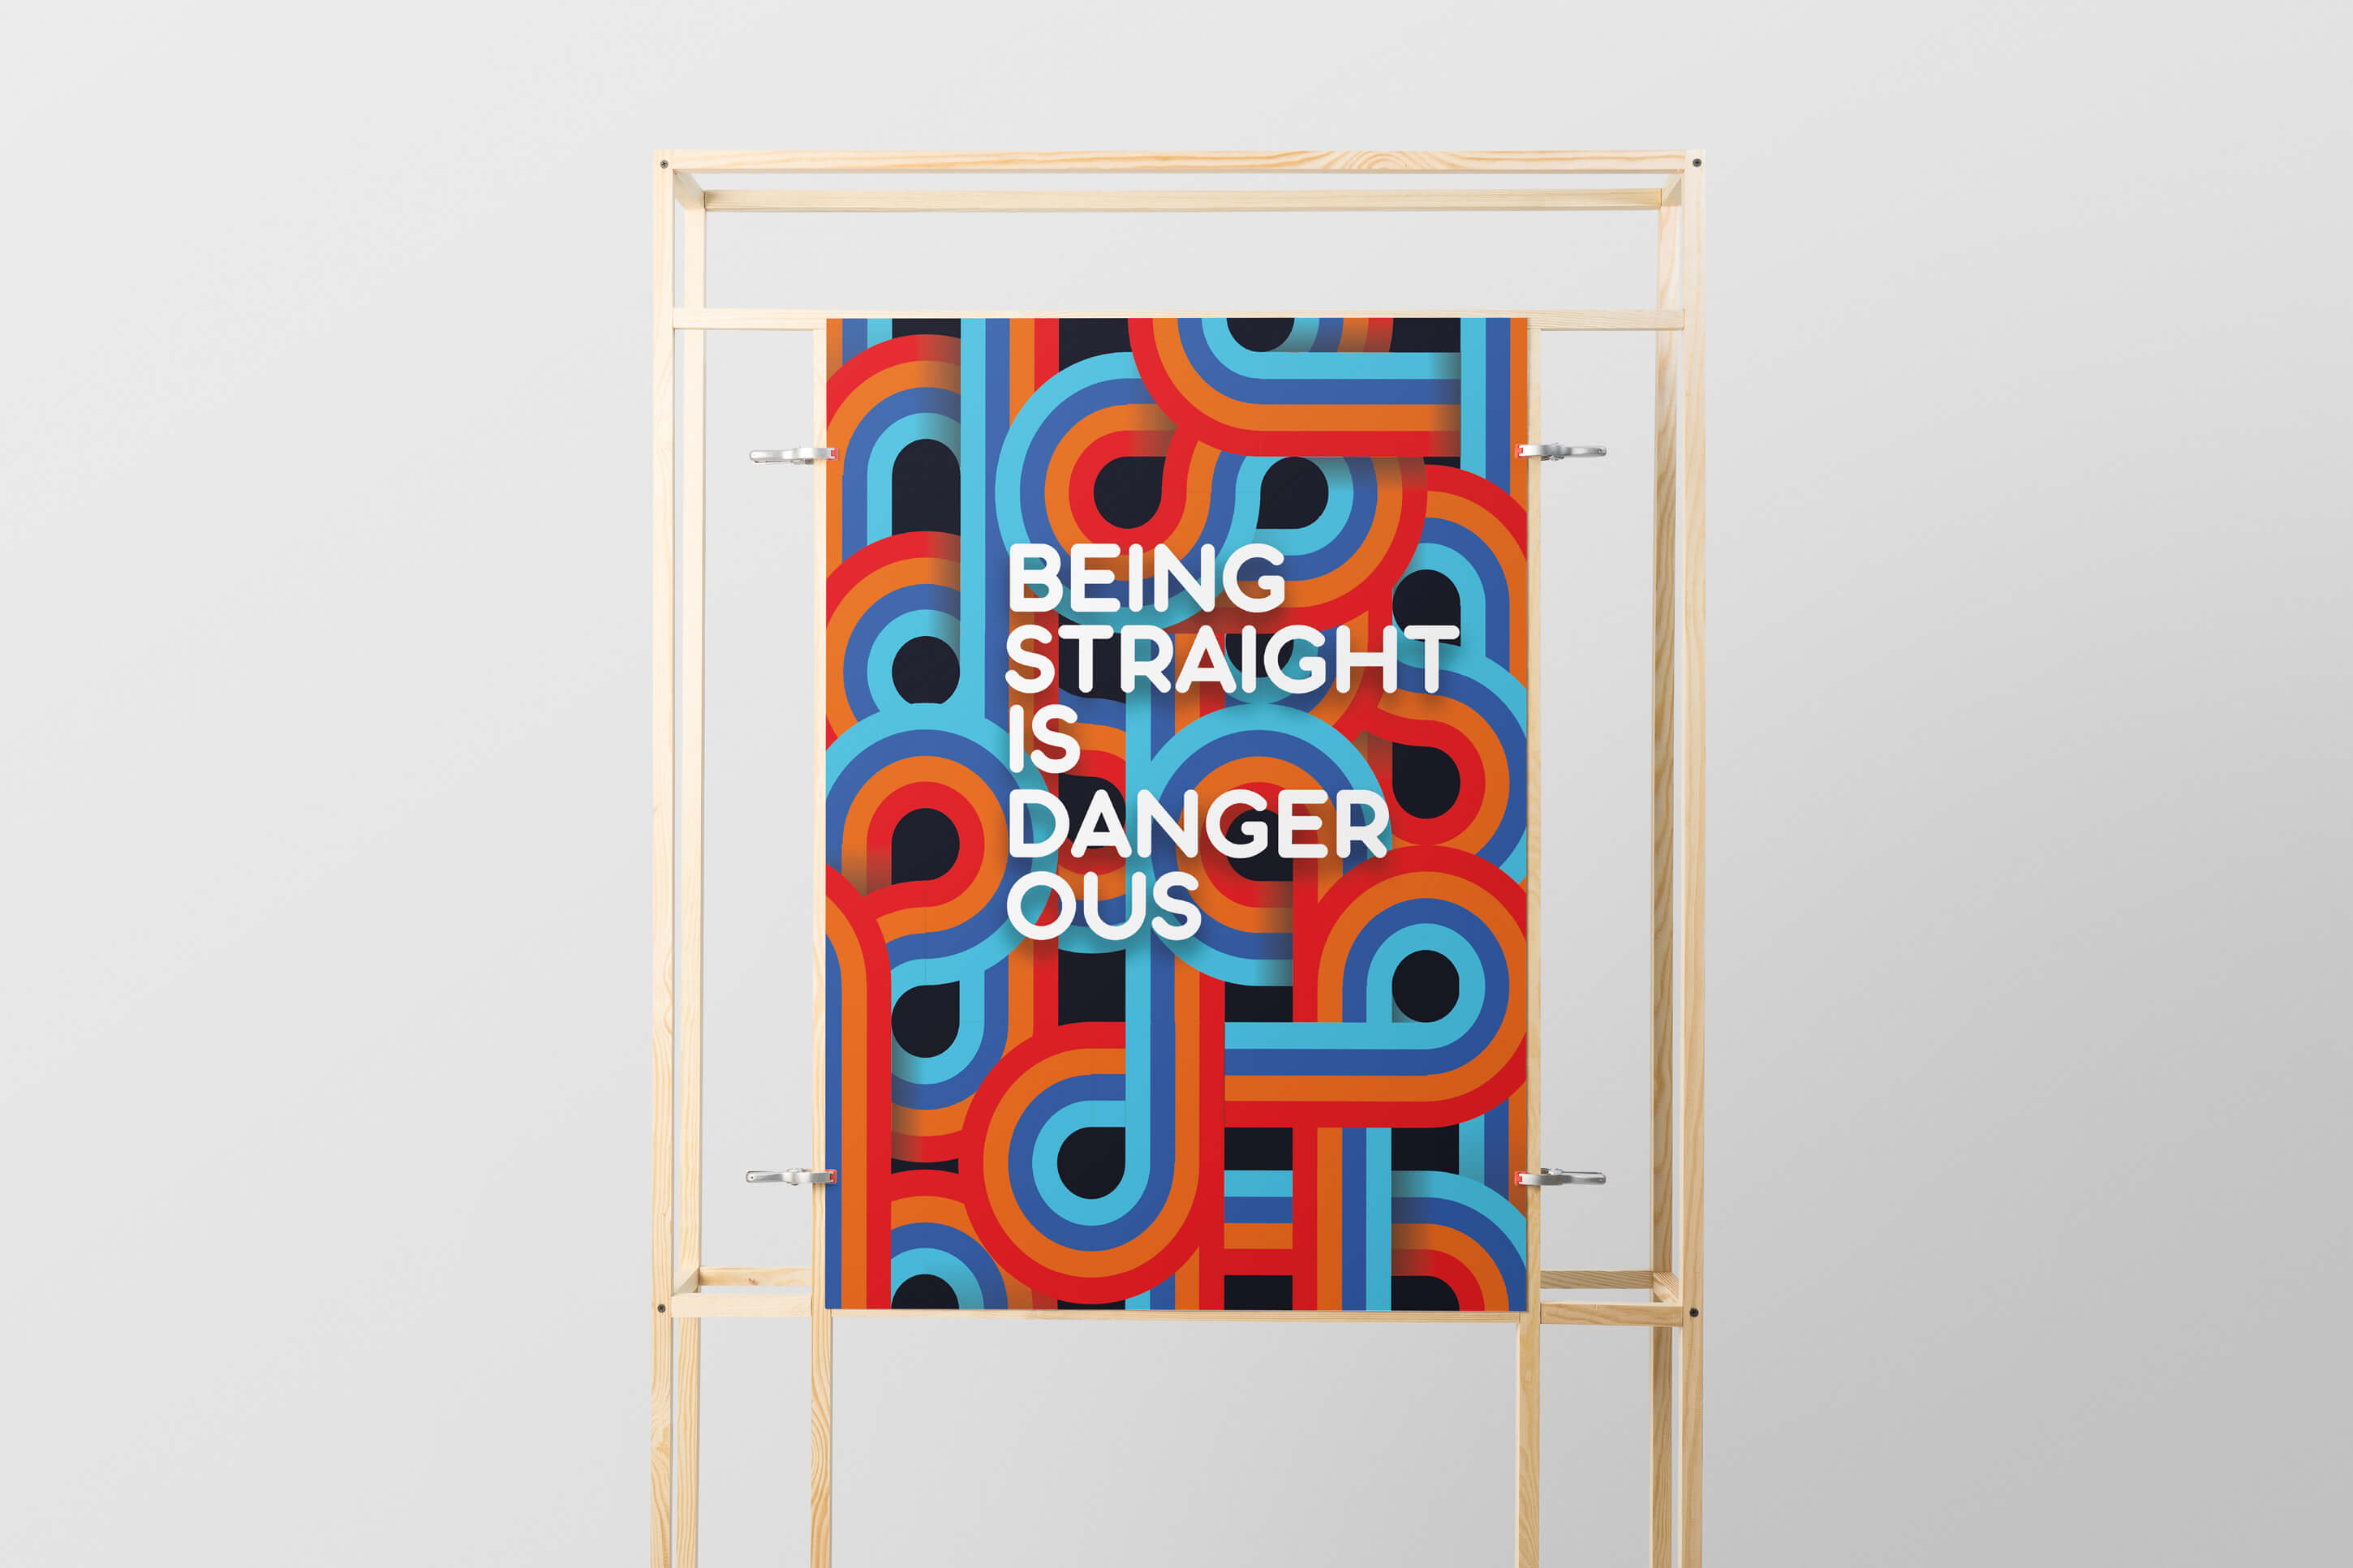 Adobe Creative Jam, Vienna 2018, Being straight is dangerous! by Philipp Mandler & Birgit Spanny